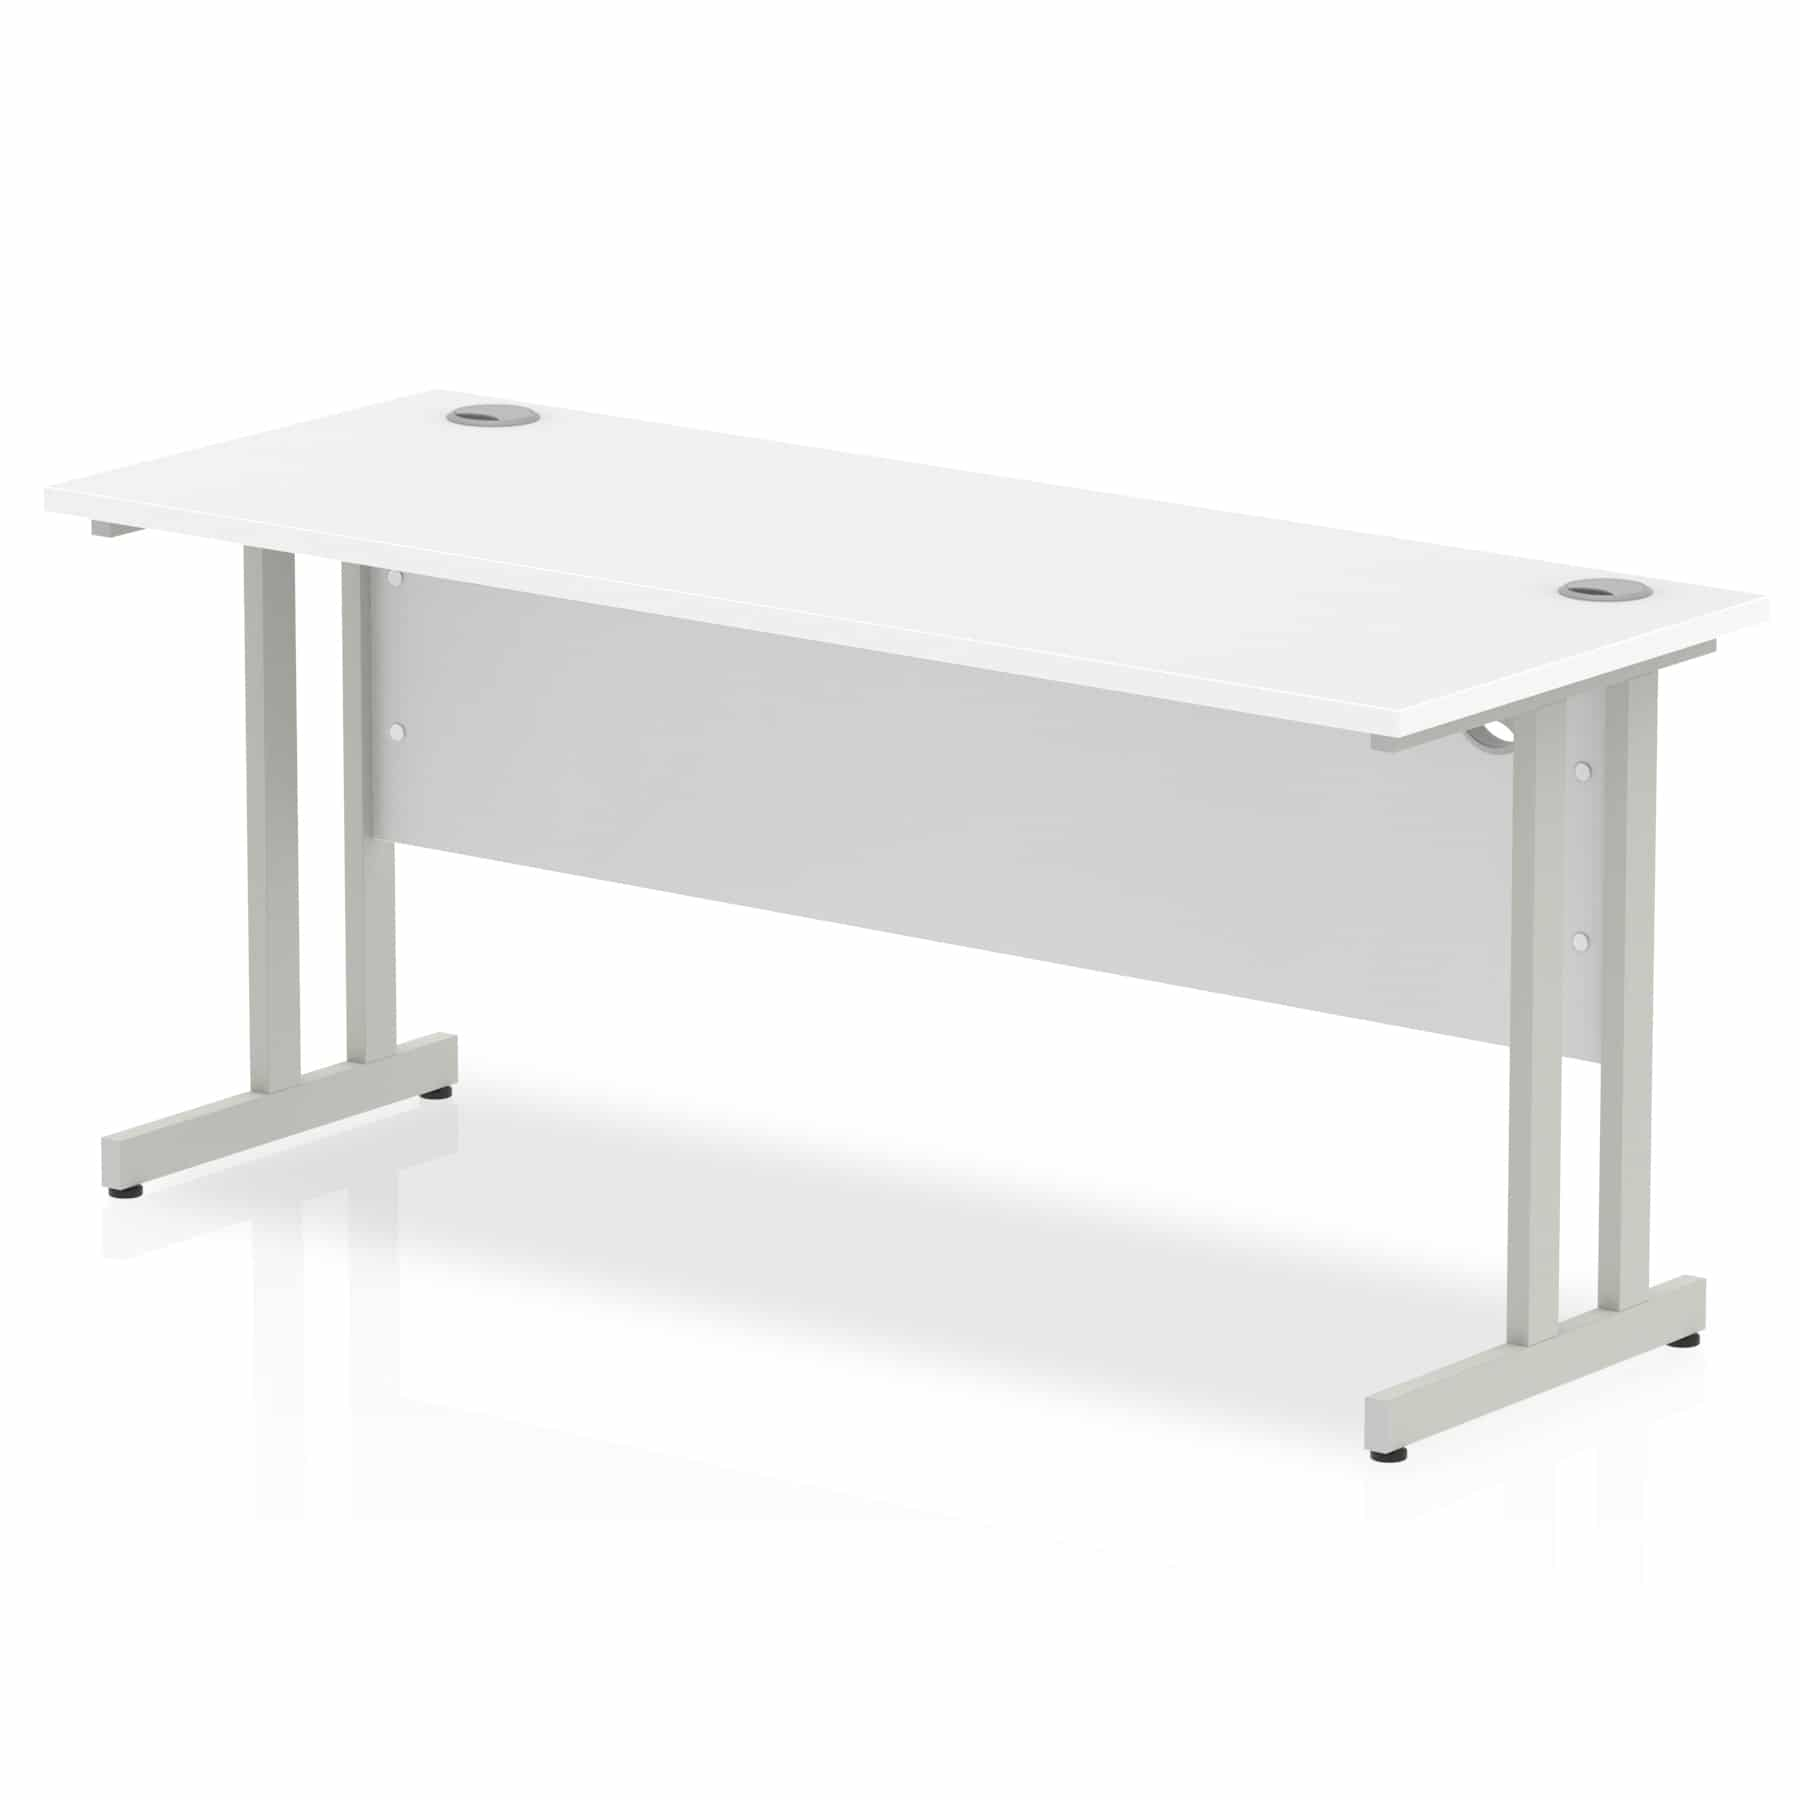 Slimline 1600mm x 600mm Rectangular Straight Desk in White